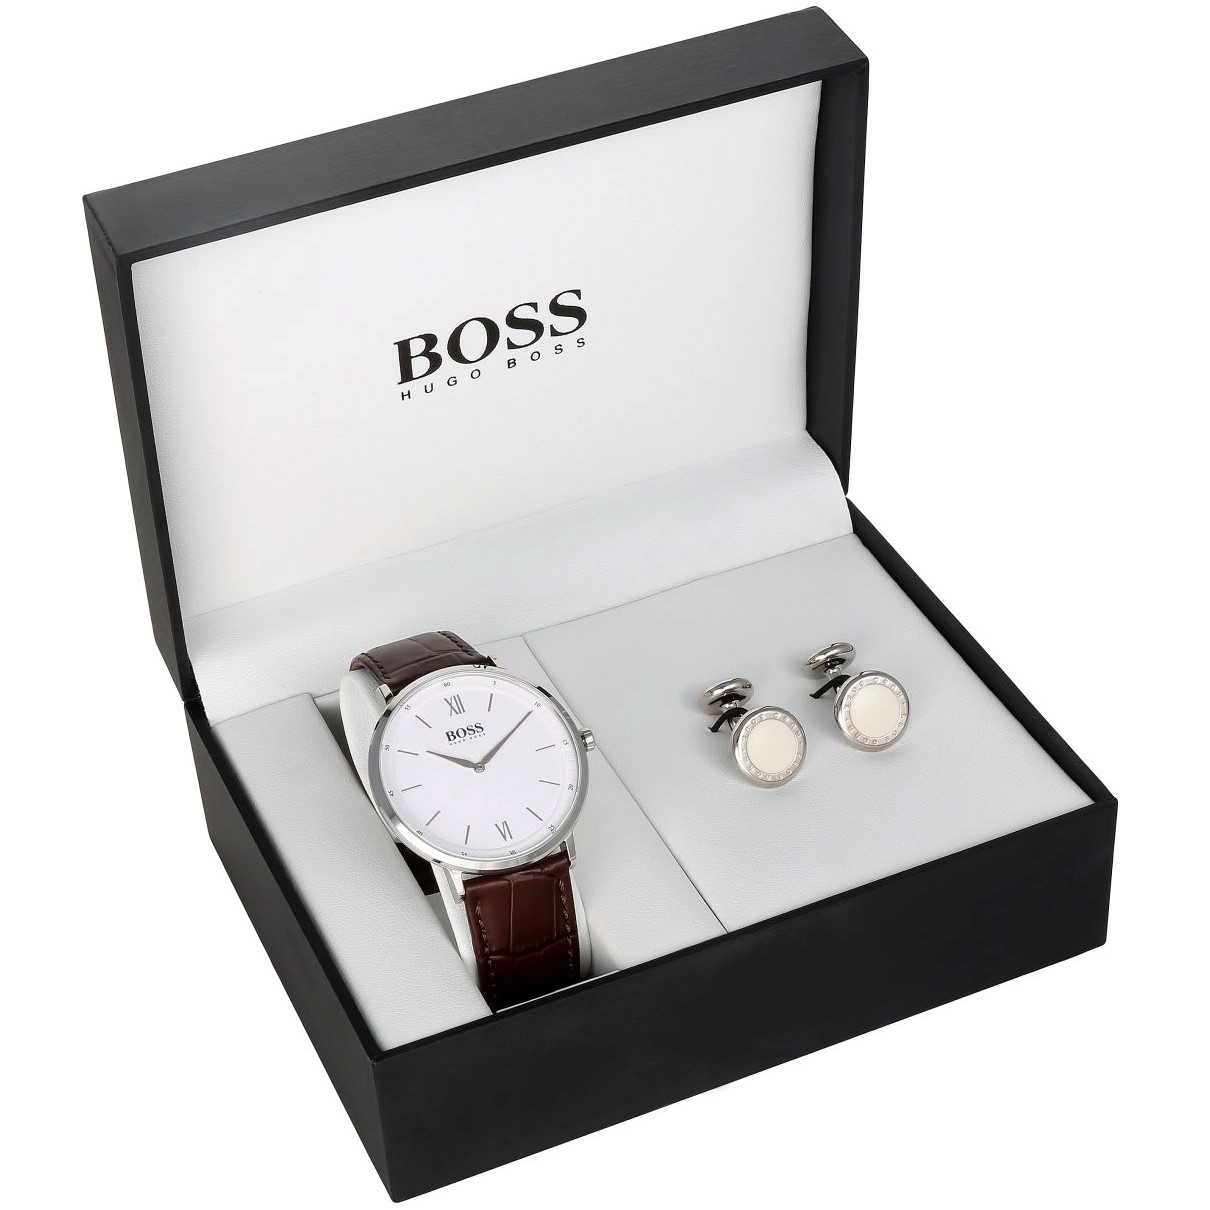 Hugo Boss watch with cufflinks.